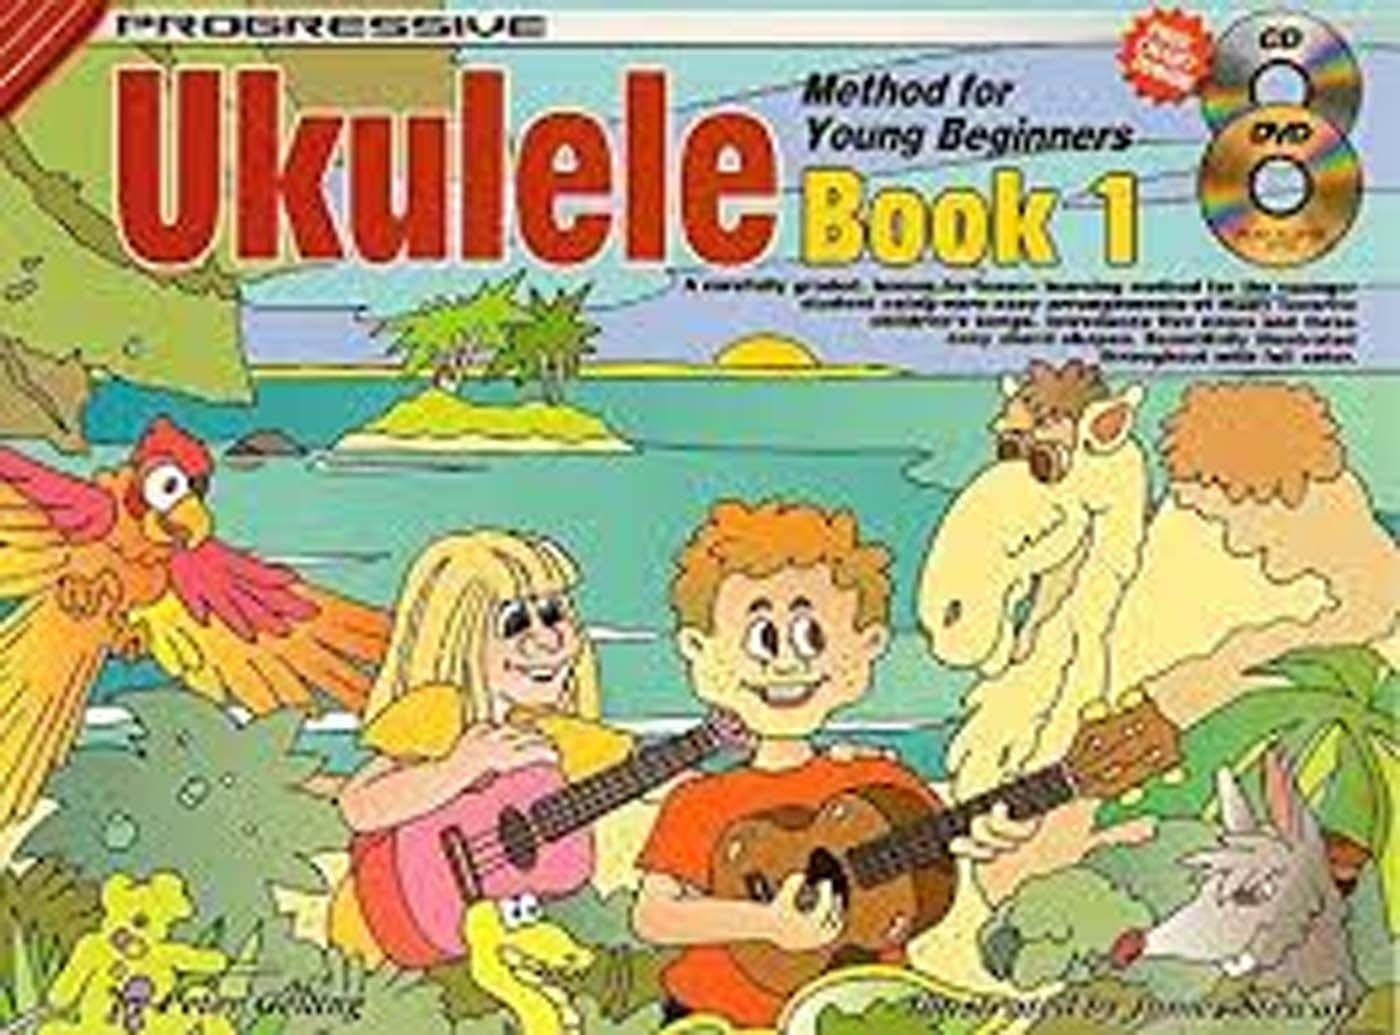 Progressive Ukelele Book 1 Method For Young Beginners CD & DVD S162